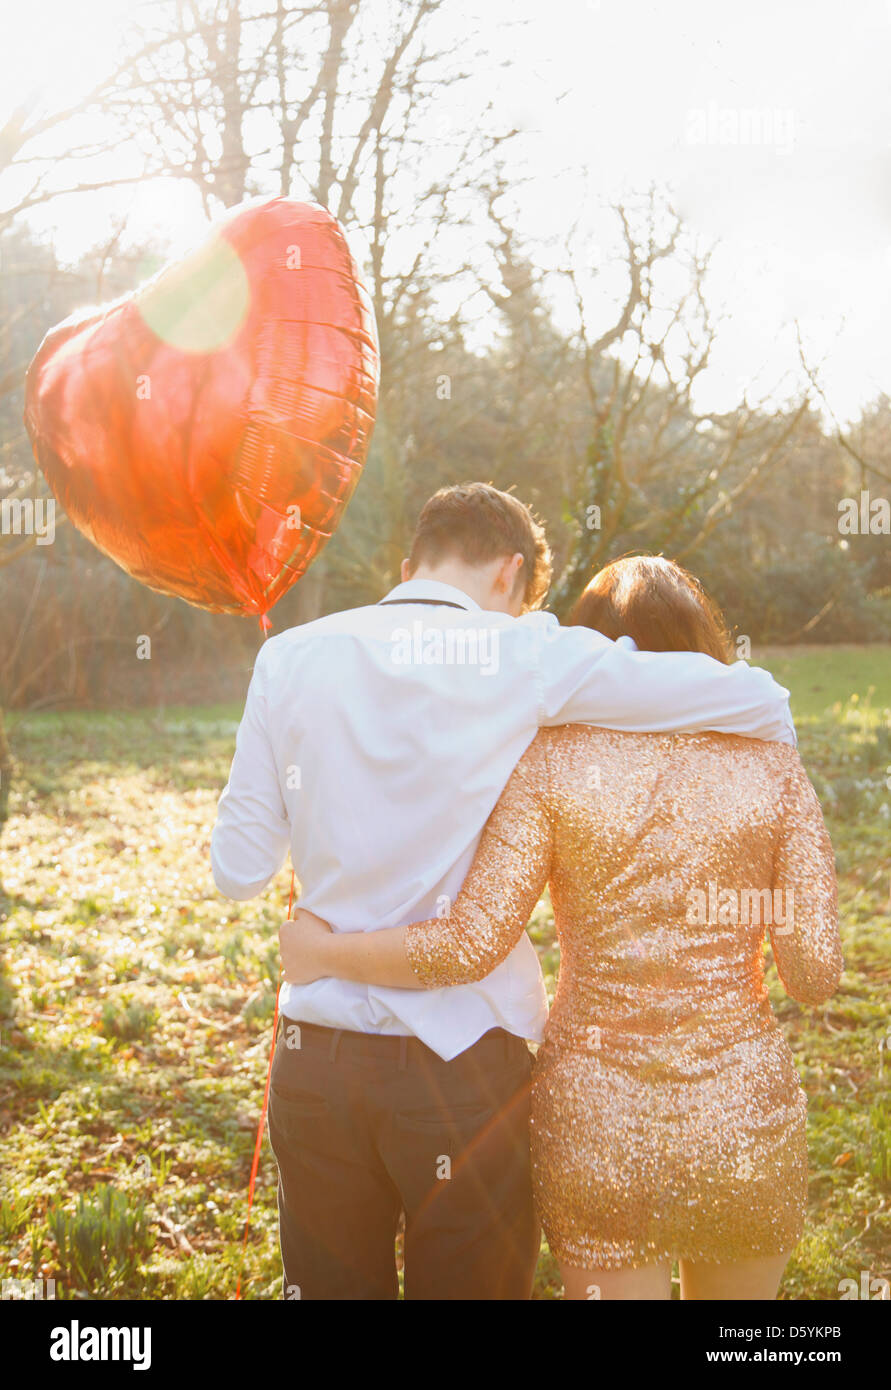 Couple in Park Holding Heart Shaped Balloon, vue arrière Photo Stock